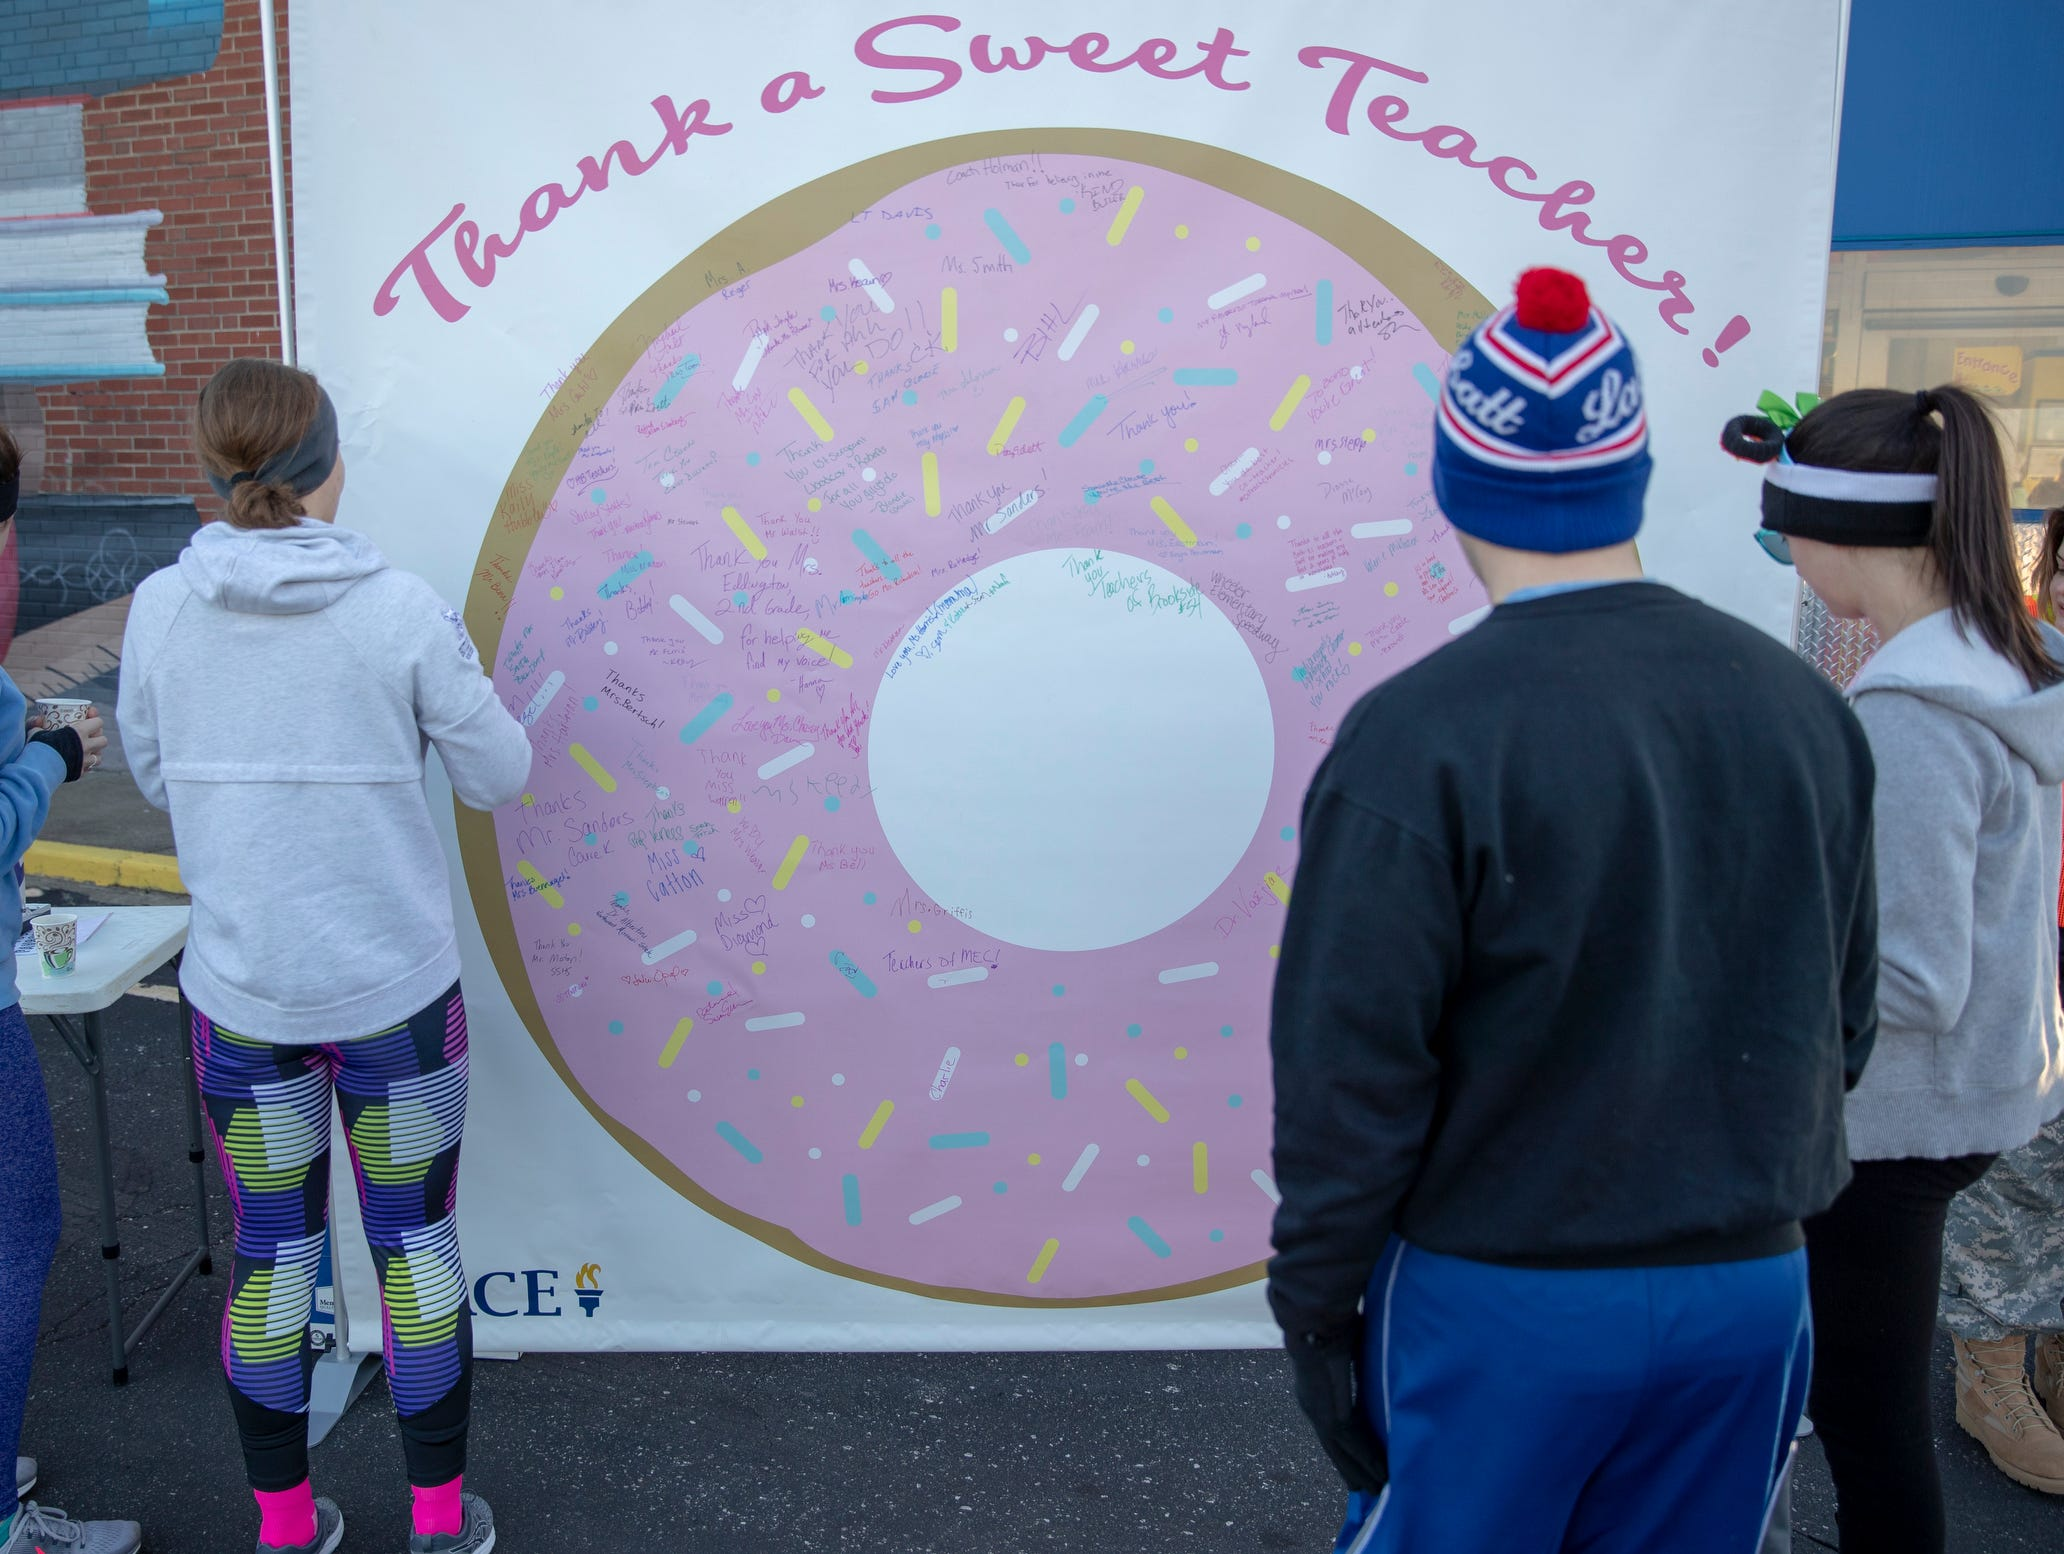 A 'thank you' wall for teachers at the Circle City Donut Dash 5k, a five kilometer race that benefits Teachers' Treasures, Indianapolis, Saturday, Feb. 16, 2019. The race invites willing runners to eat a dozen doughnut holes at the halfway point in the event that helps provide school supplies for area school kids.